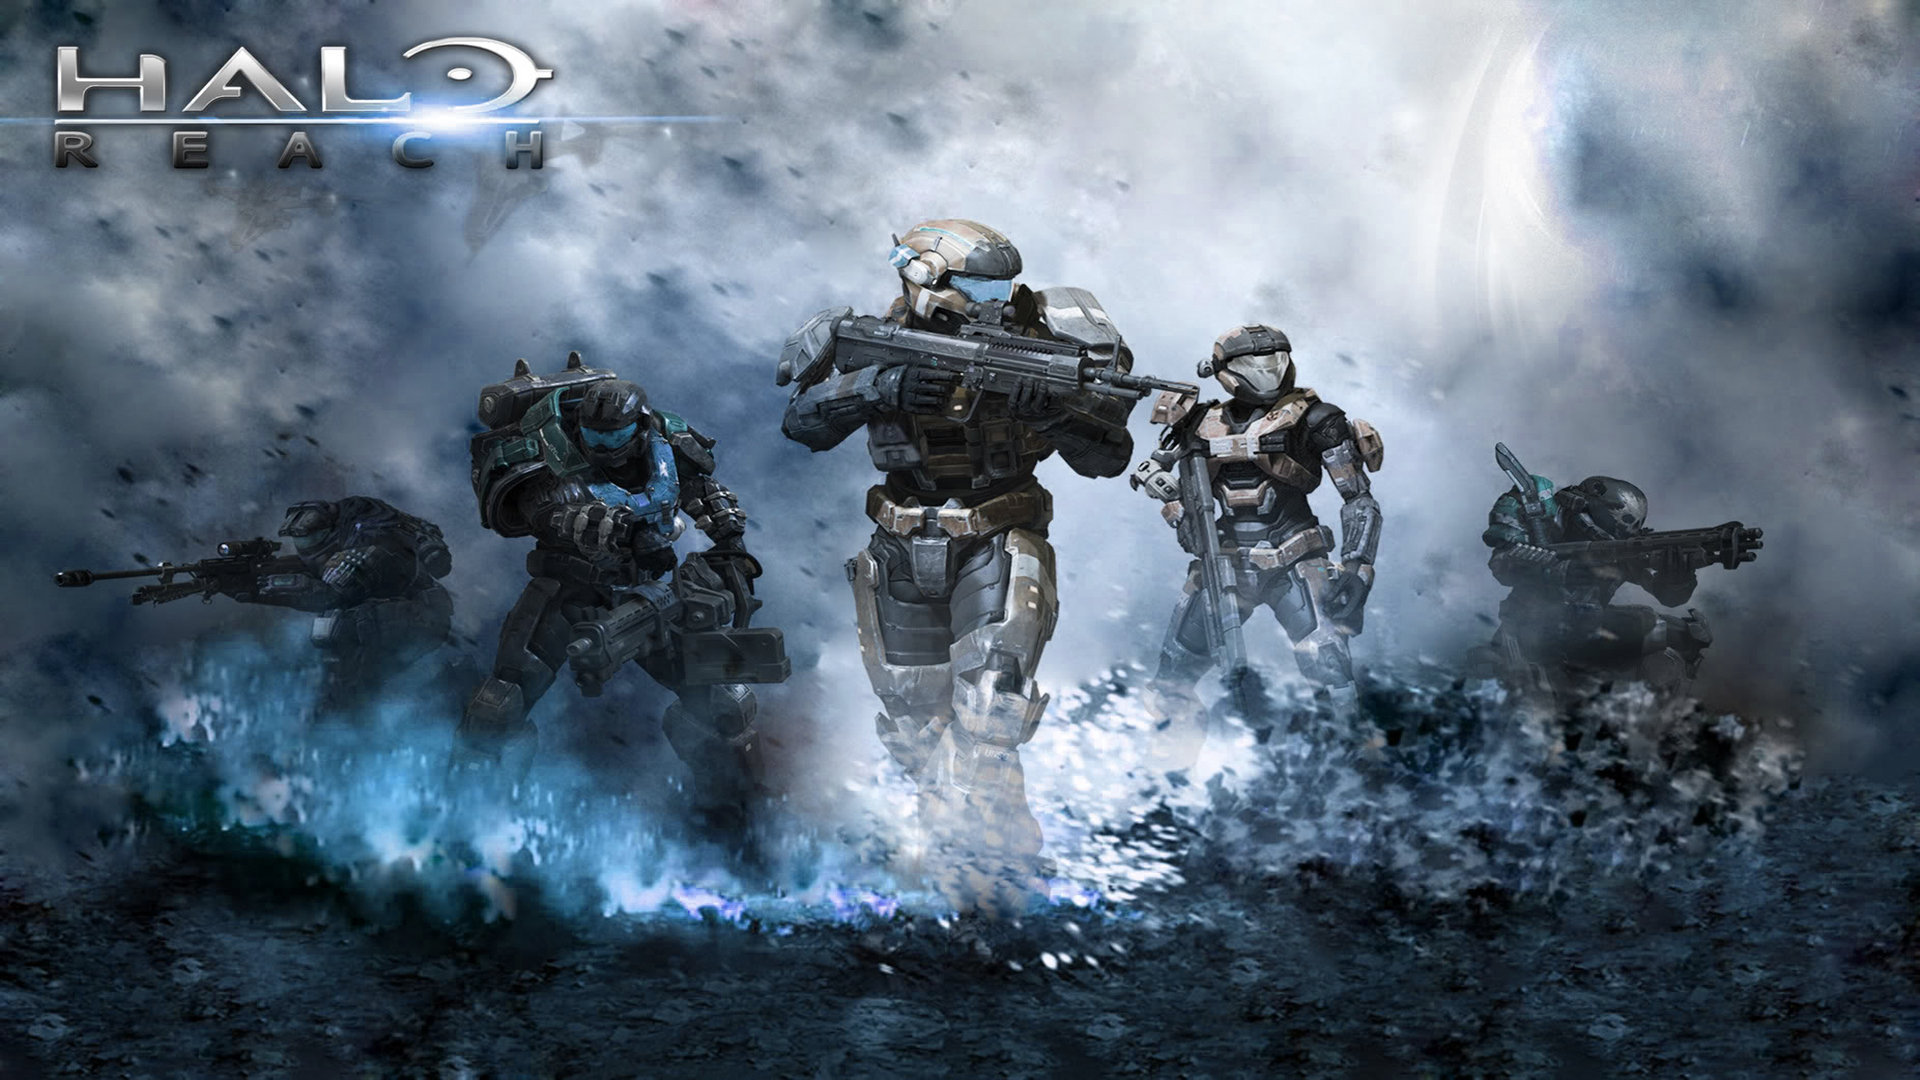 Wallpapers Wide With Quotes Halo 5 Wallpaper Hd Pixelstalk Net